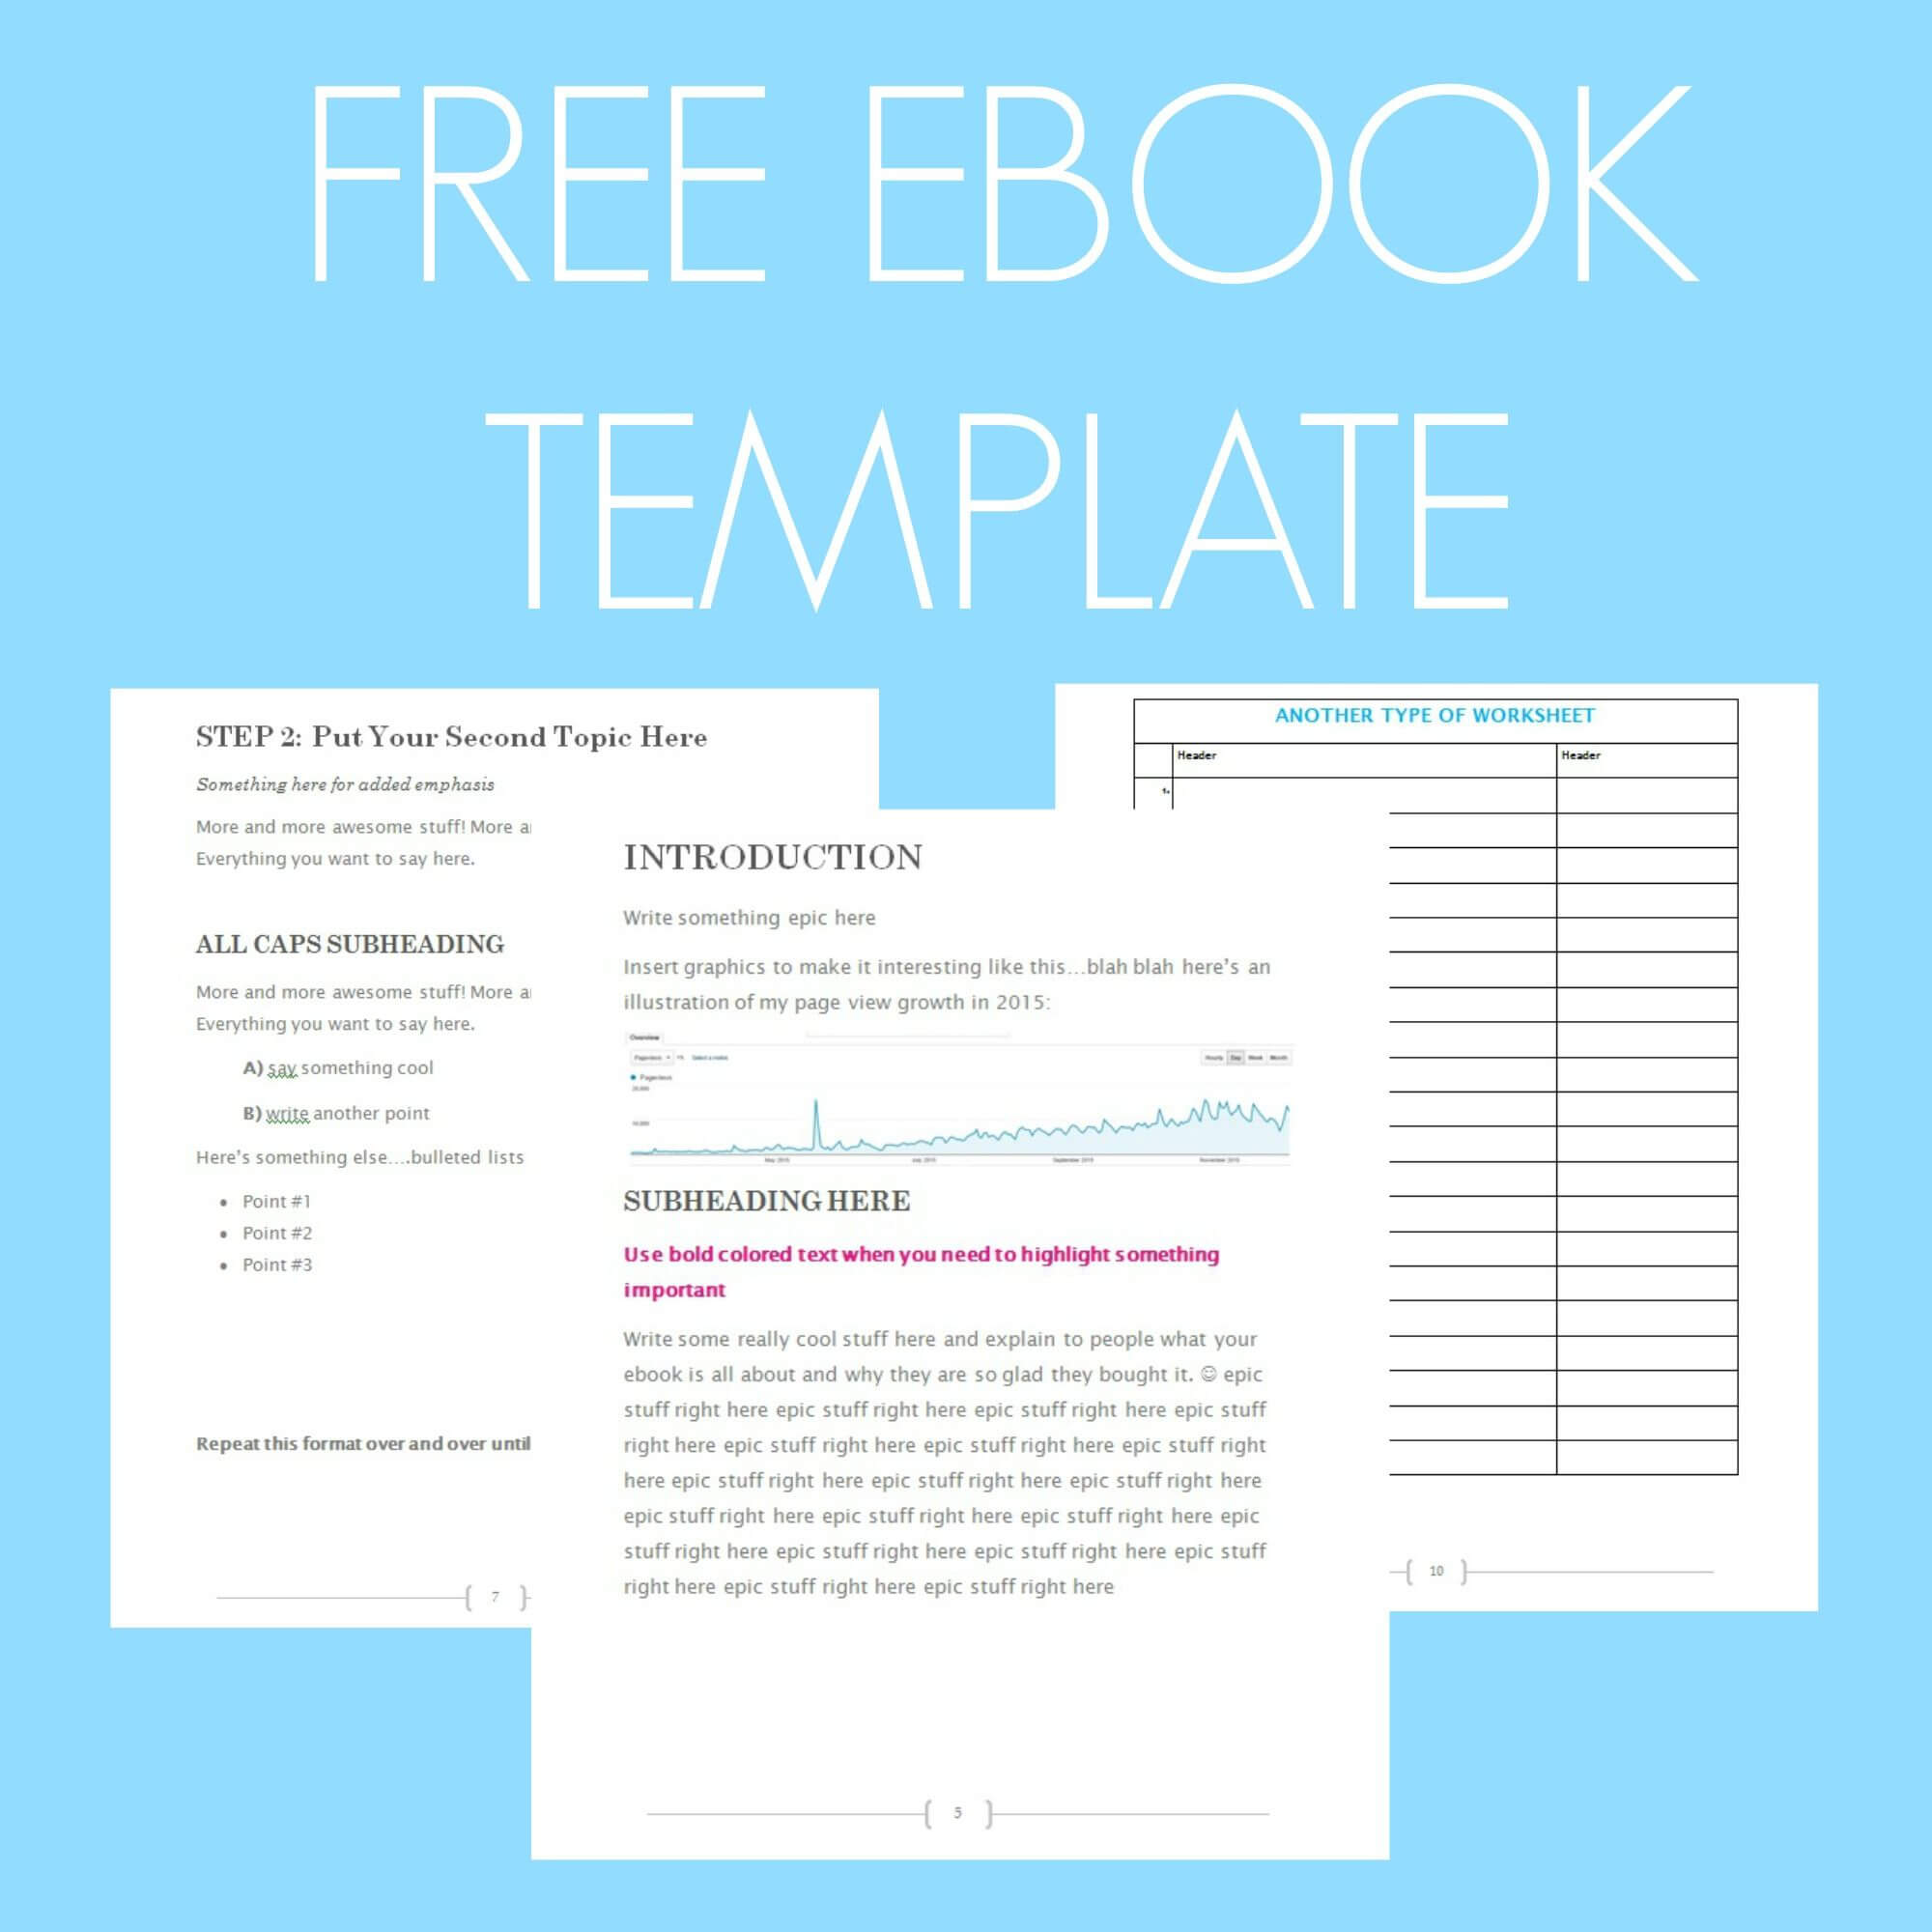 Free Ebook Template – Preformatted Word Document | Free Inside Microsoft Word Table Of Contents Template